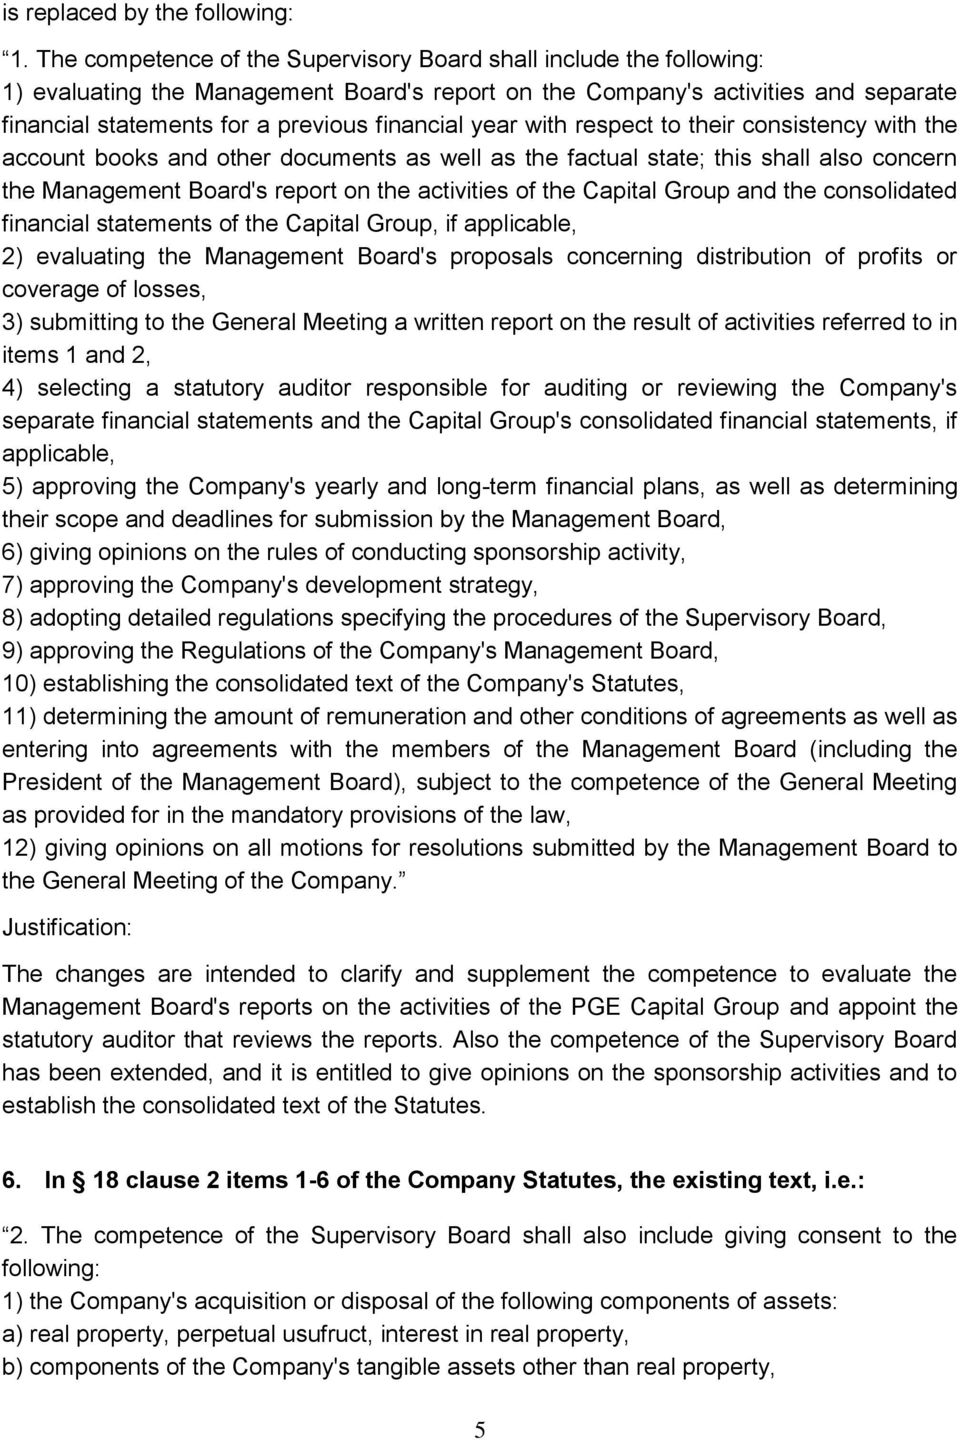 the Capital Group and the consolidated financial statements of the Capital Group, if applicable, 2) evaluating the Management Board's proposals concerning distribution of profits or coverage of